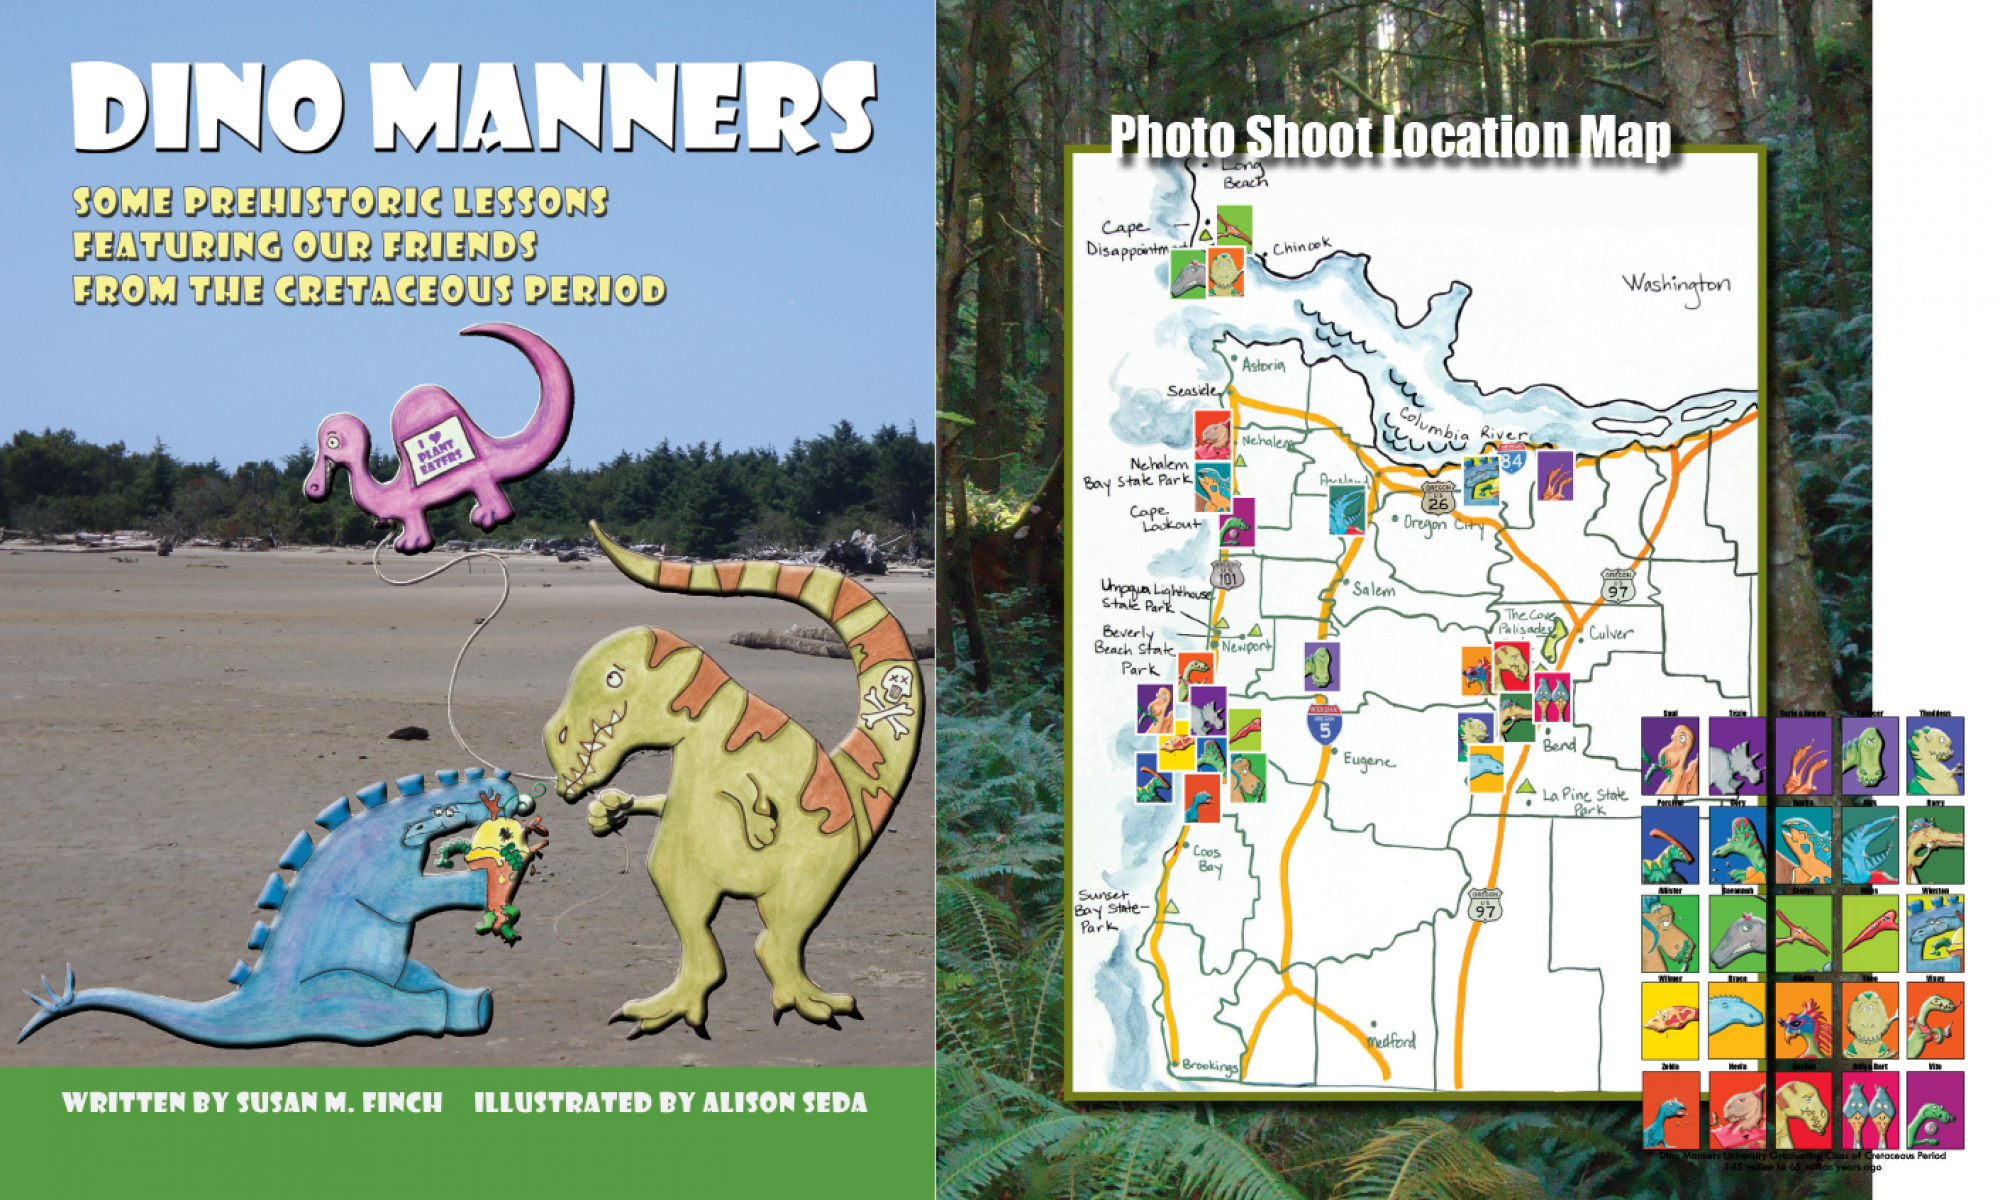 Dino Manners by Alison Seda and Susan M Finch